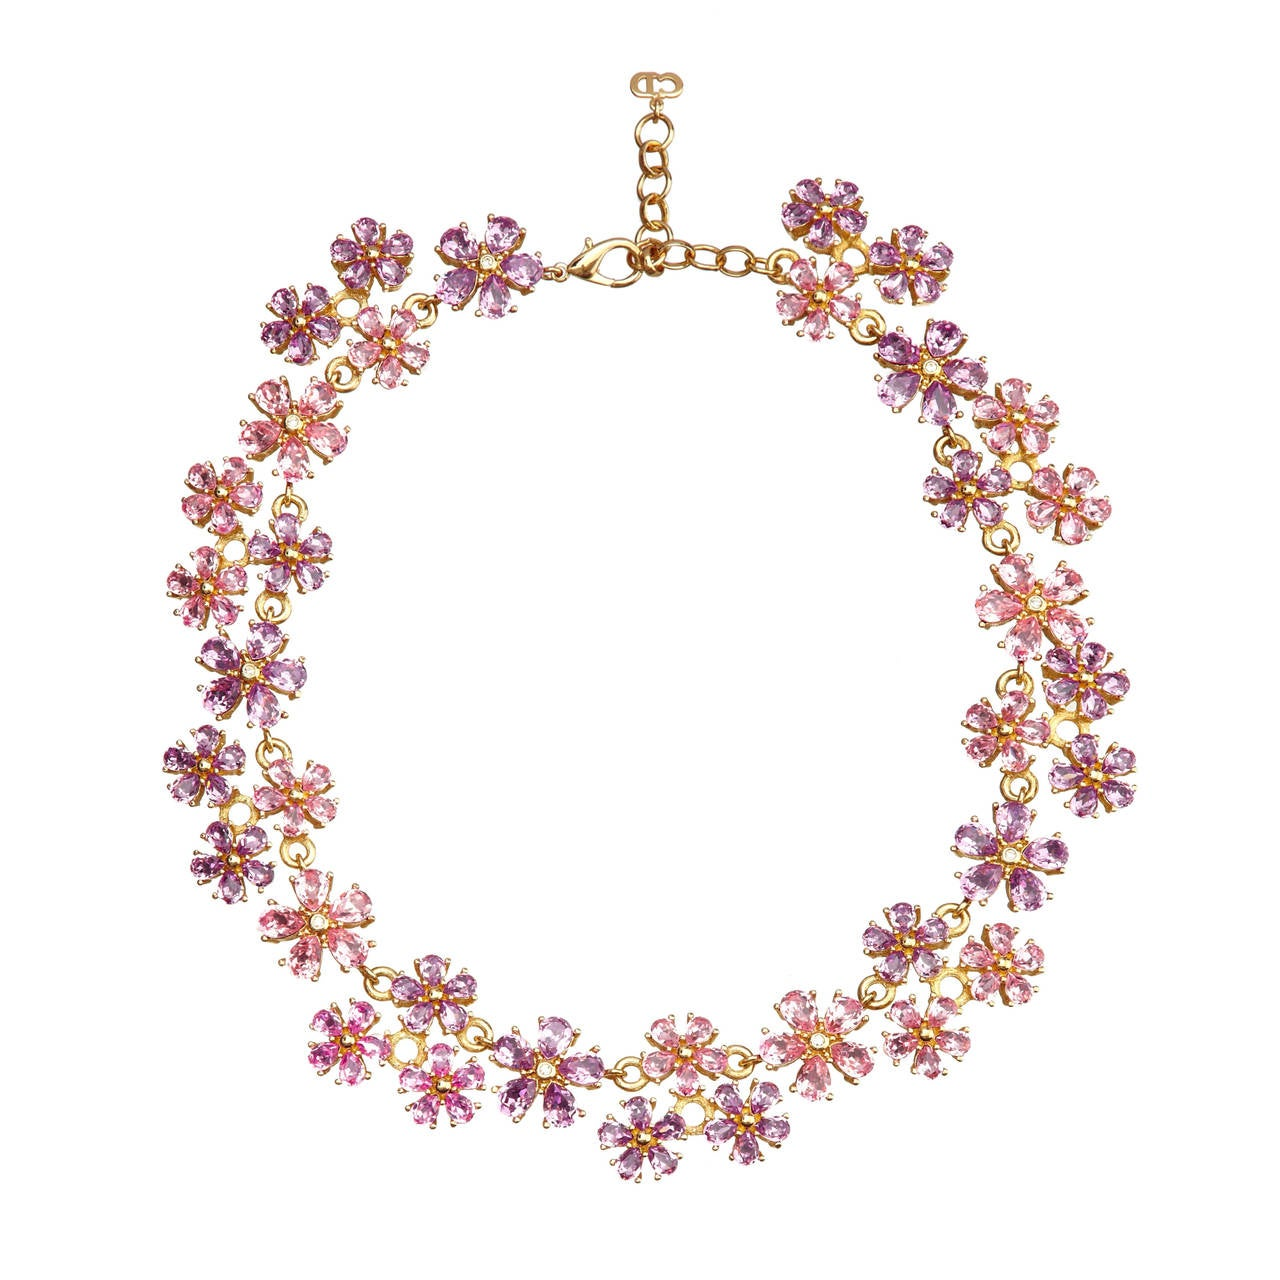 Vintage Christian Dior Floral Necklace 1